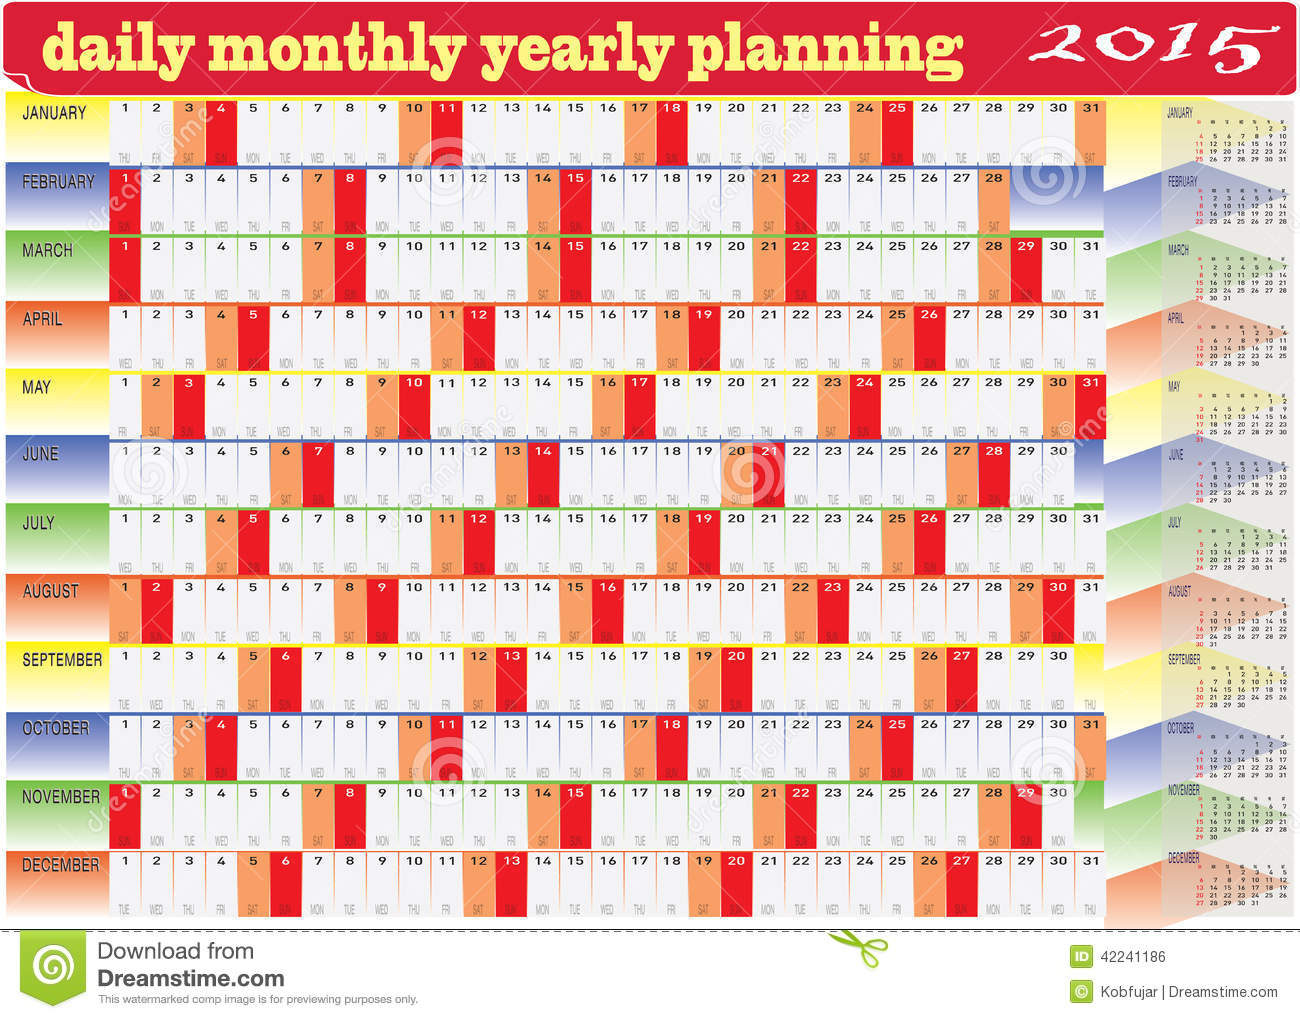 Daily Monthly Yearly Calendar 2015